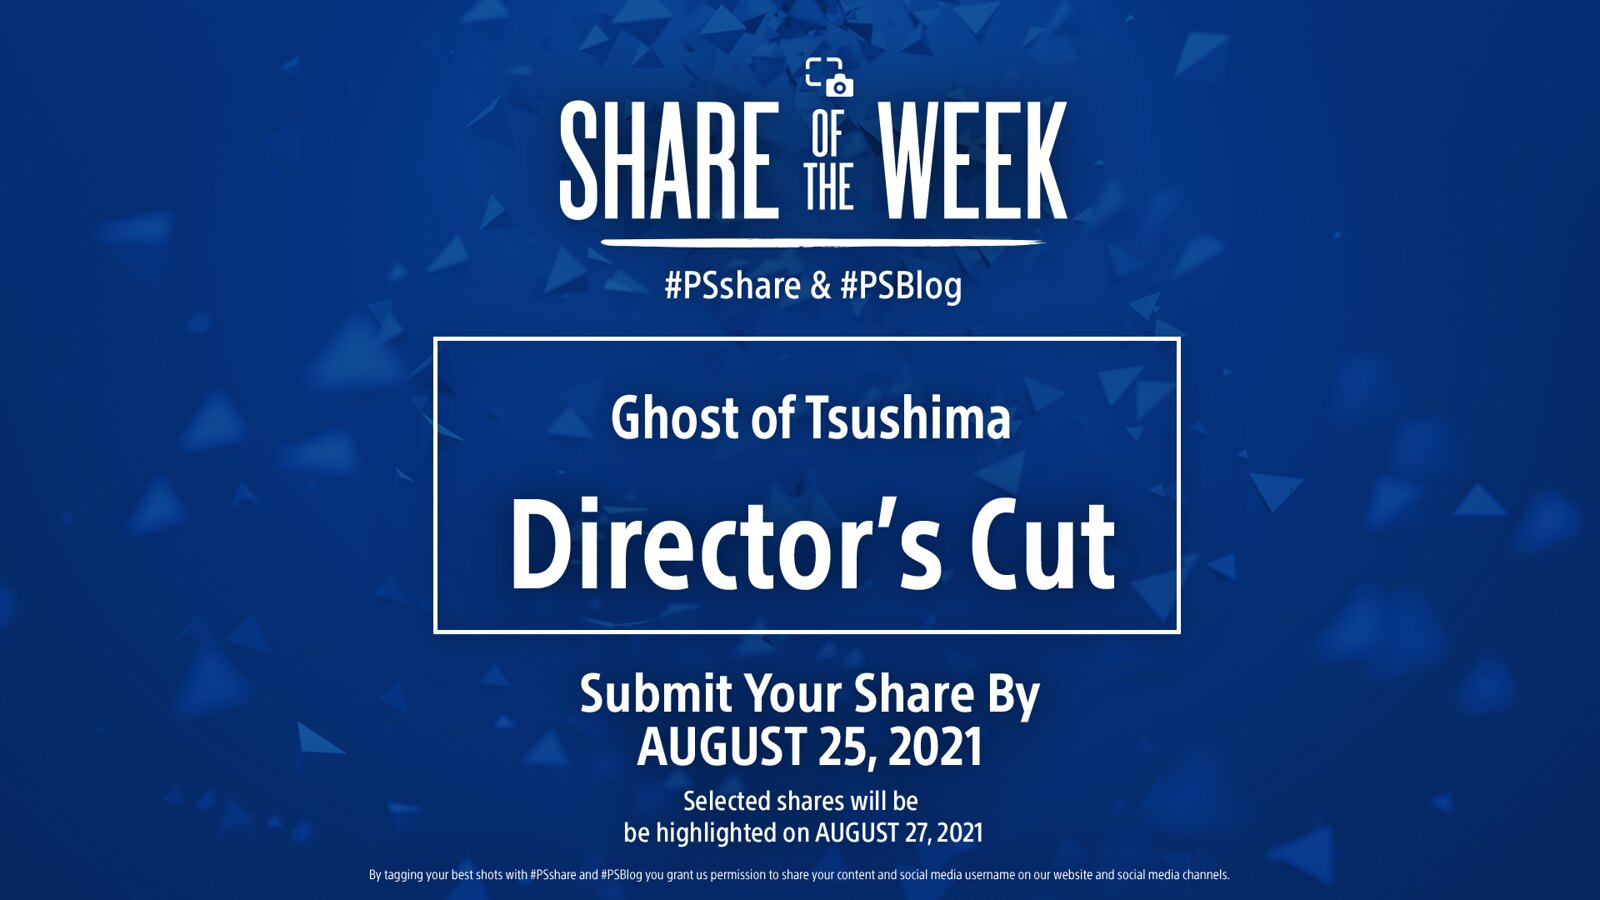 51389481223 8e43f68832 h Share of the Week: Reflections – PlayStation.Blog